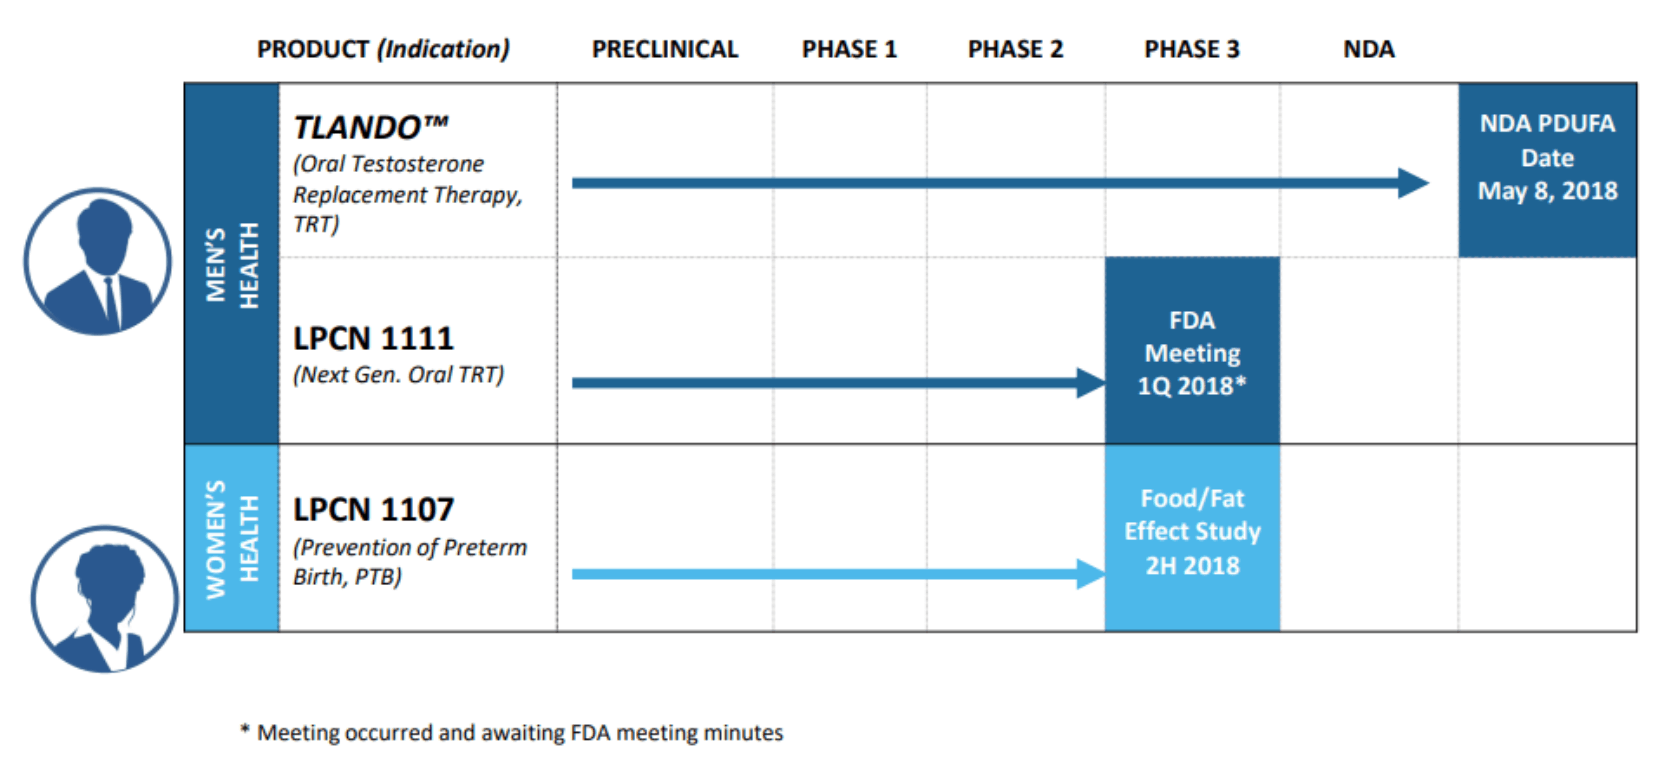 LPCN: Coming at the FDA Like a Spider Monkey